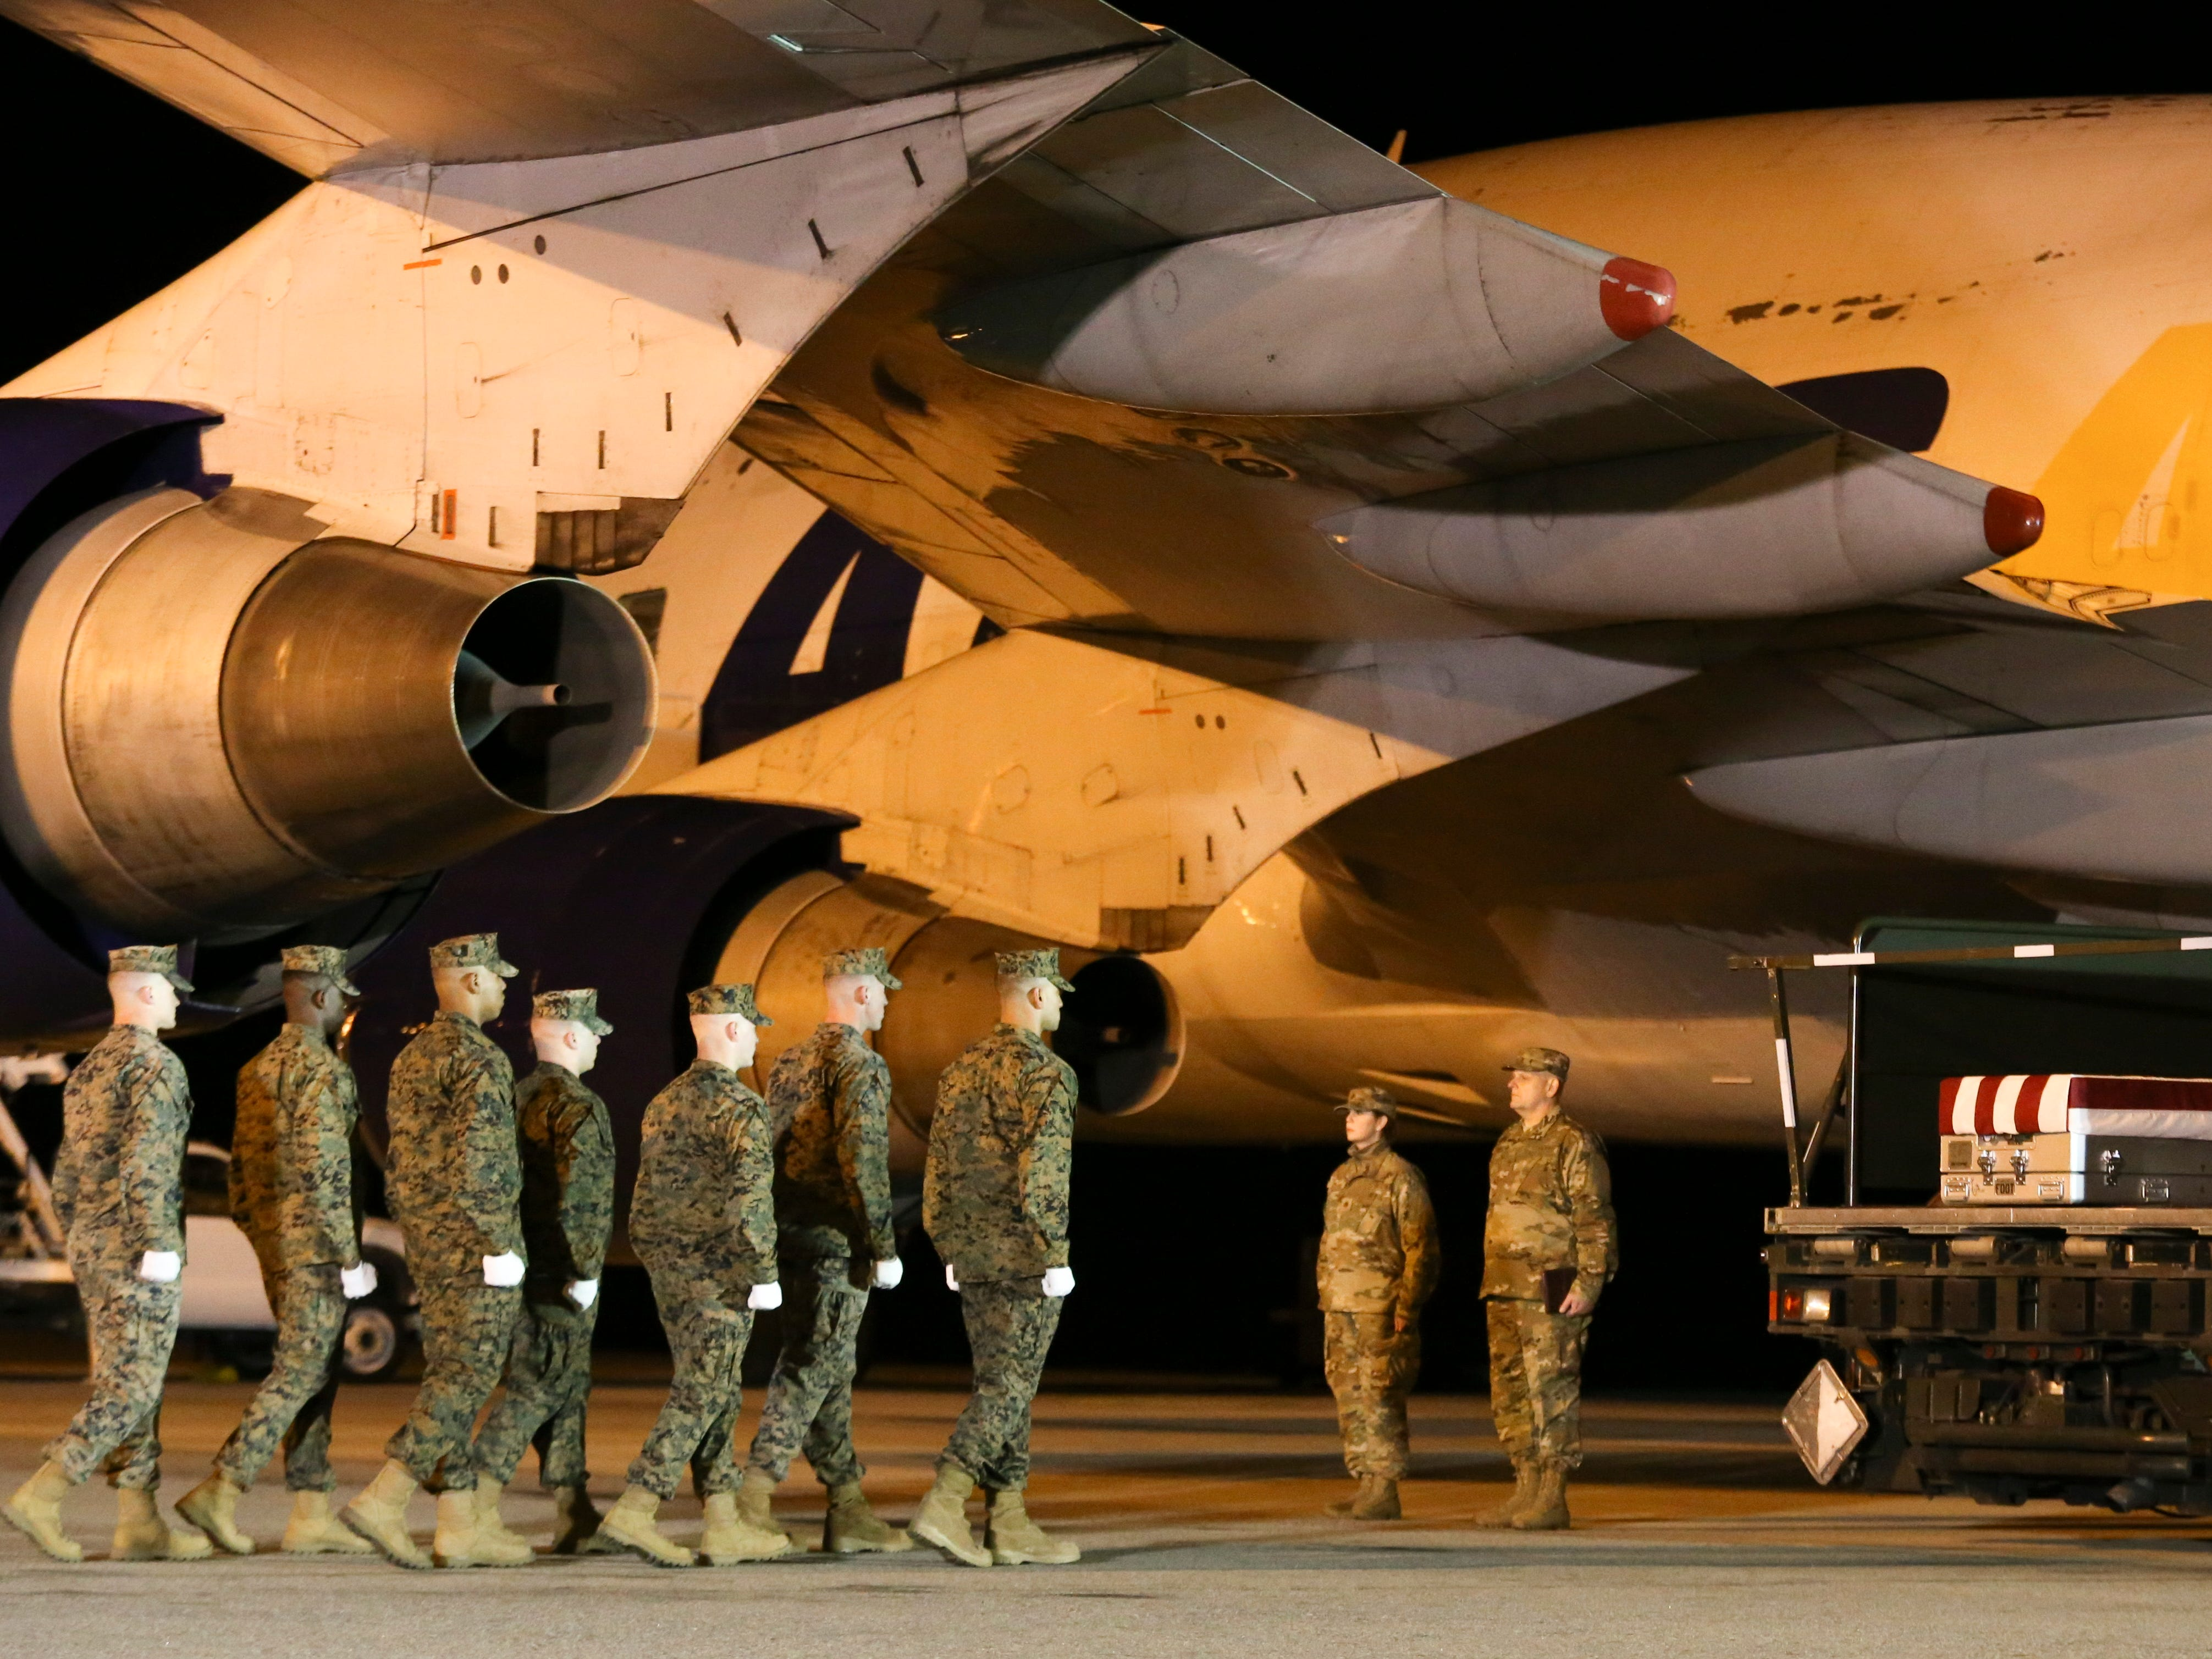 Marines move to transfer the remains of Marine Staff Sgt. Christopher A. Slutman at Dover Air Force Base in a solemn process Thursday evening.